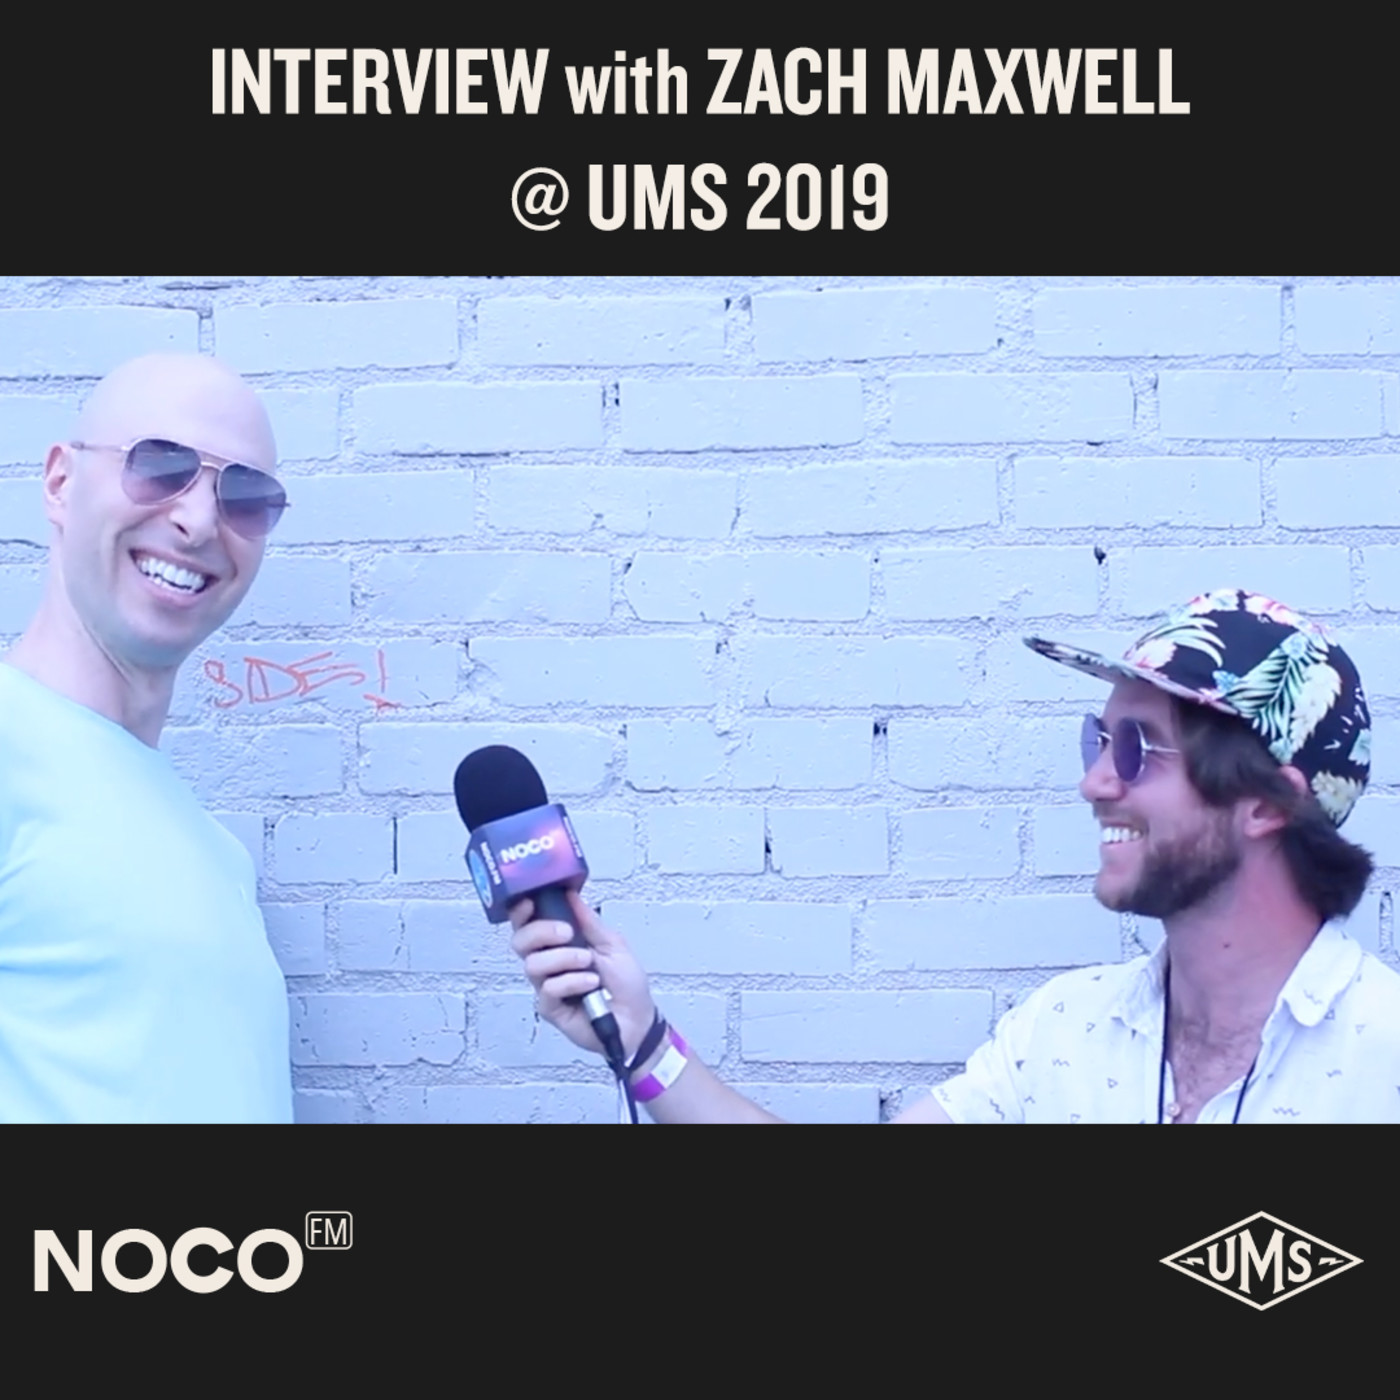 Interview with Zach Maxwell @ UMS 2019